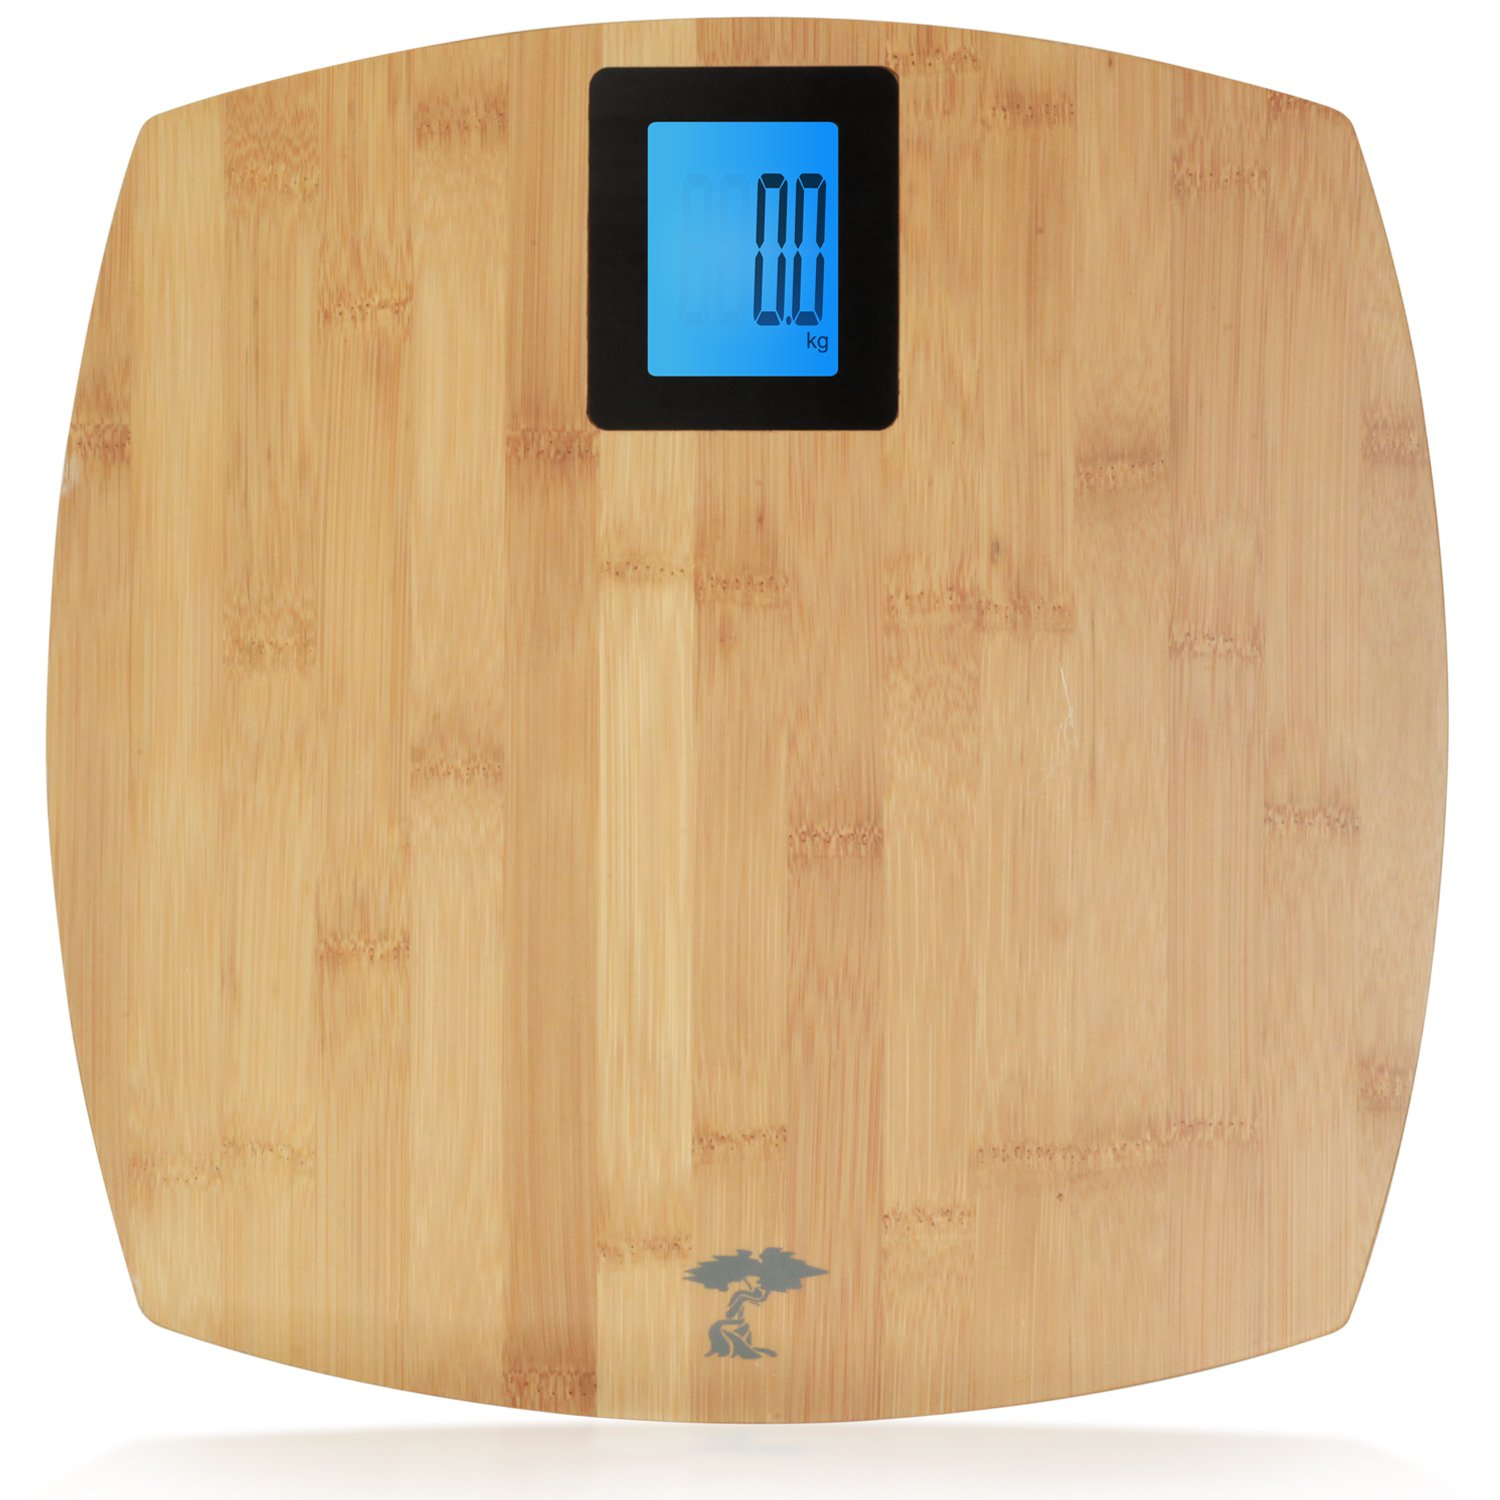 Deluxe Bamboo Bathroom Scale. Backlit Large Display. 400lb Capacity. by ToiletTree Products